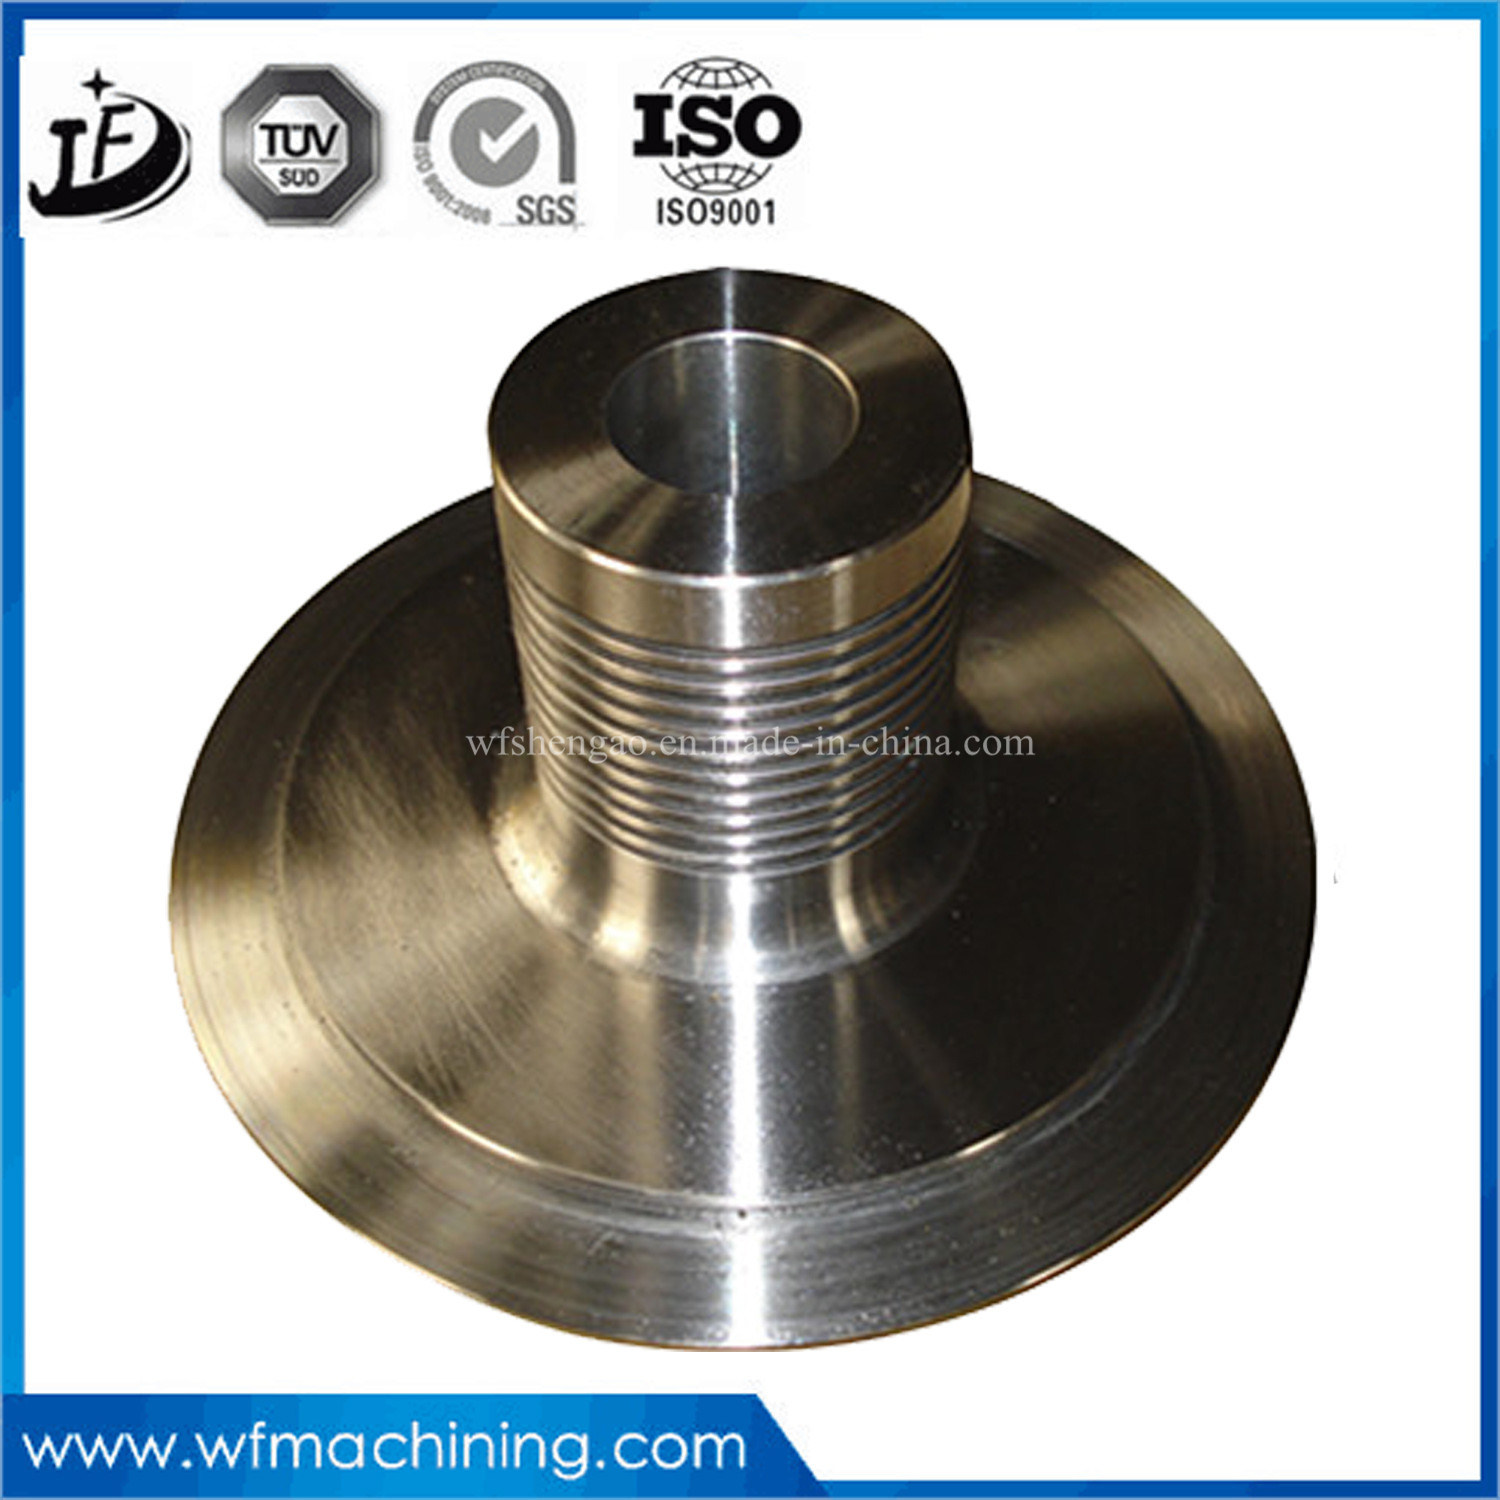 CNC Machining Stainless Steel/Aluminum/Steel Parts/CNC Turning Parts of CNC Bicycle Spare Parts